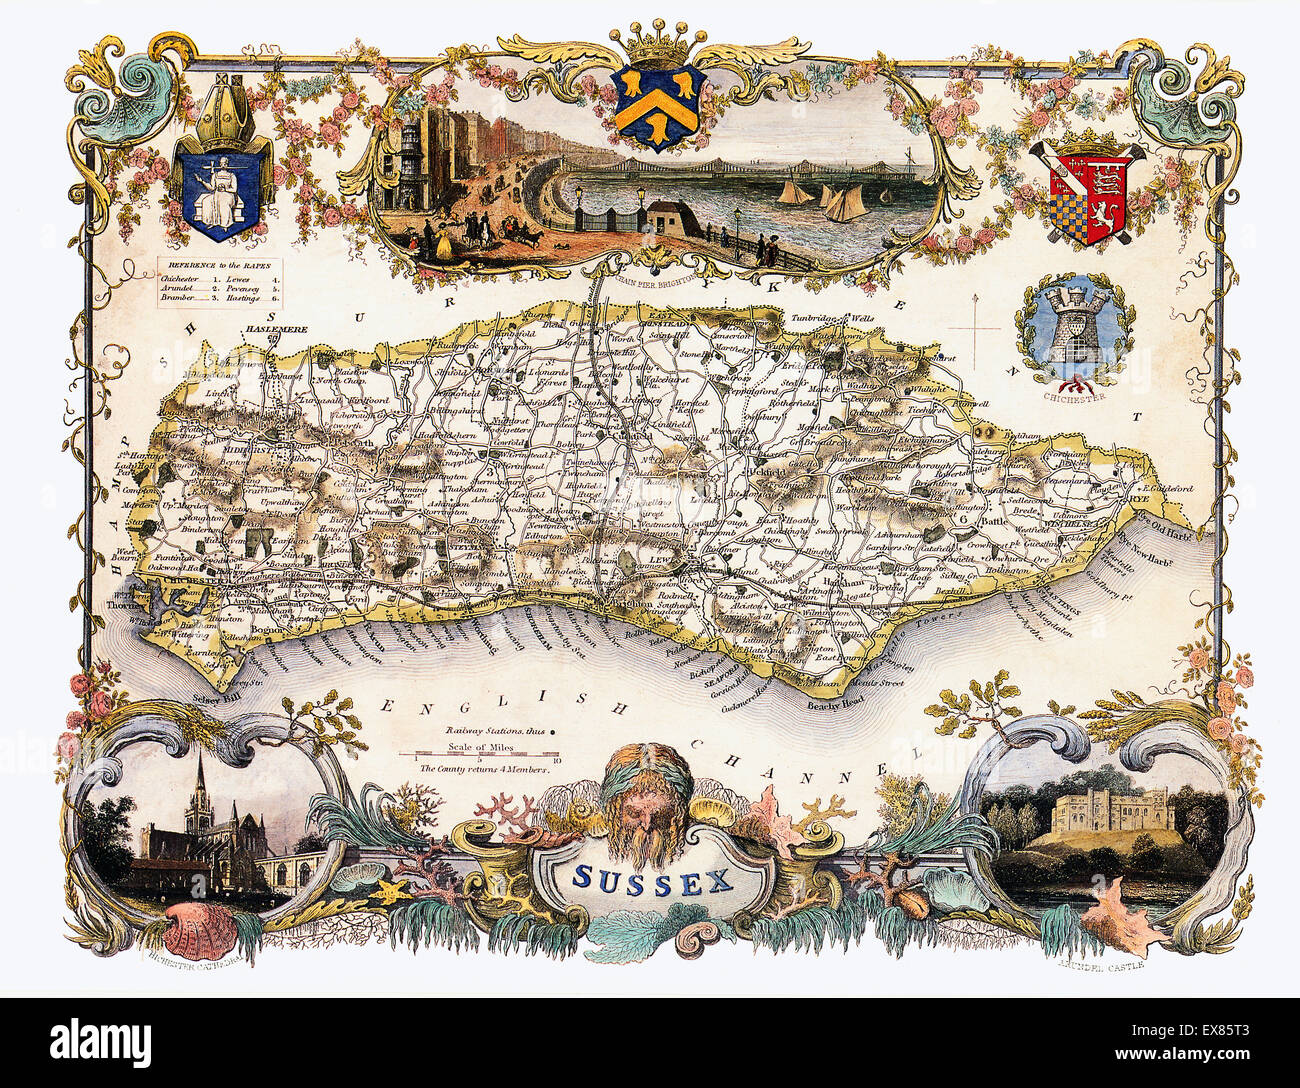 Sussex Map, 1850 by Thomas Moule of the English county, with illustrations of Brighton Pier, Chichester Cathedral - Stock Image